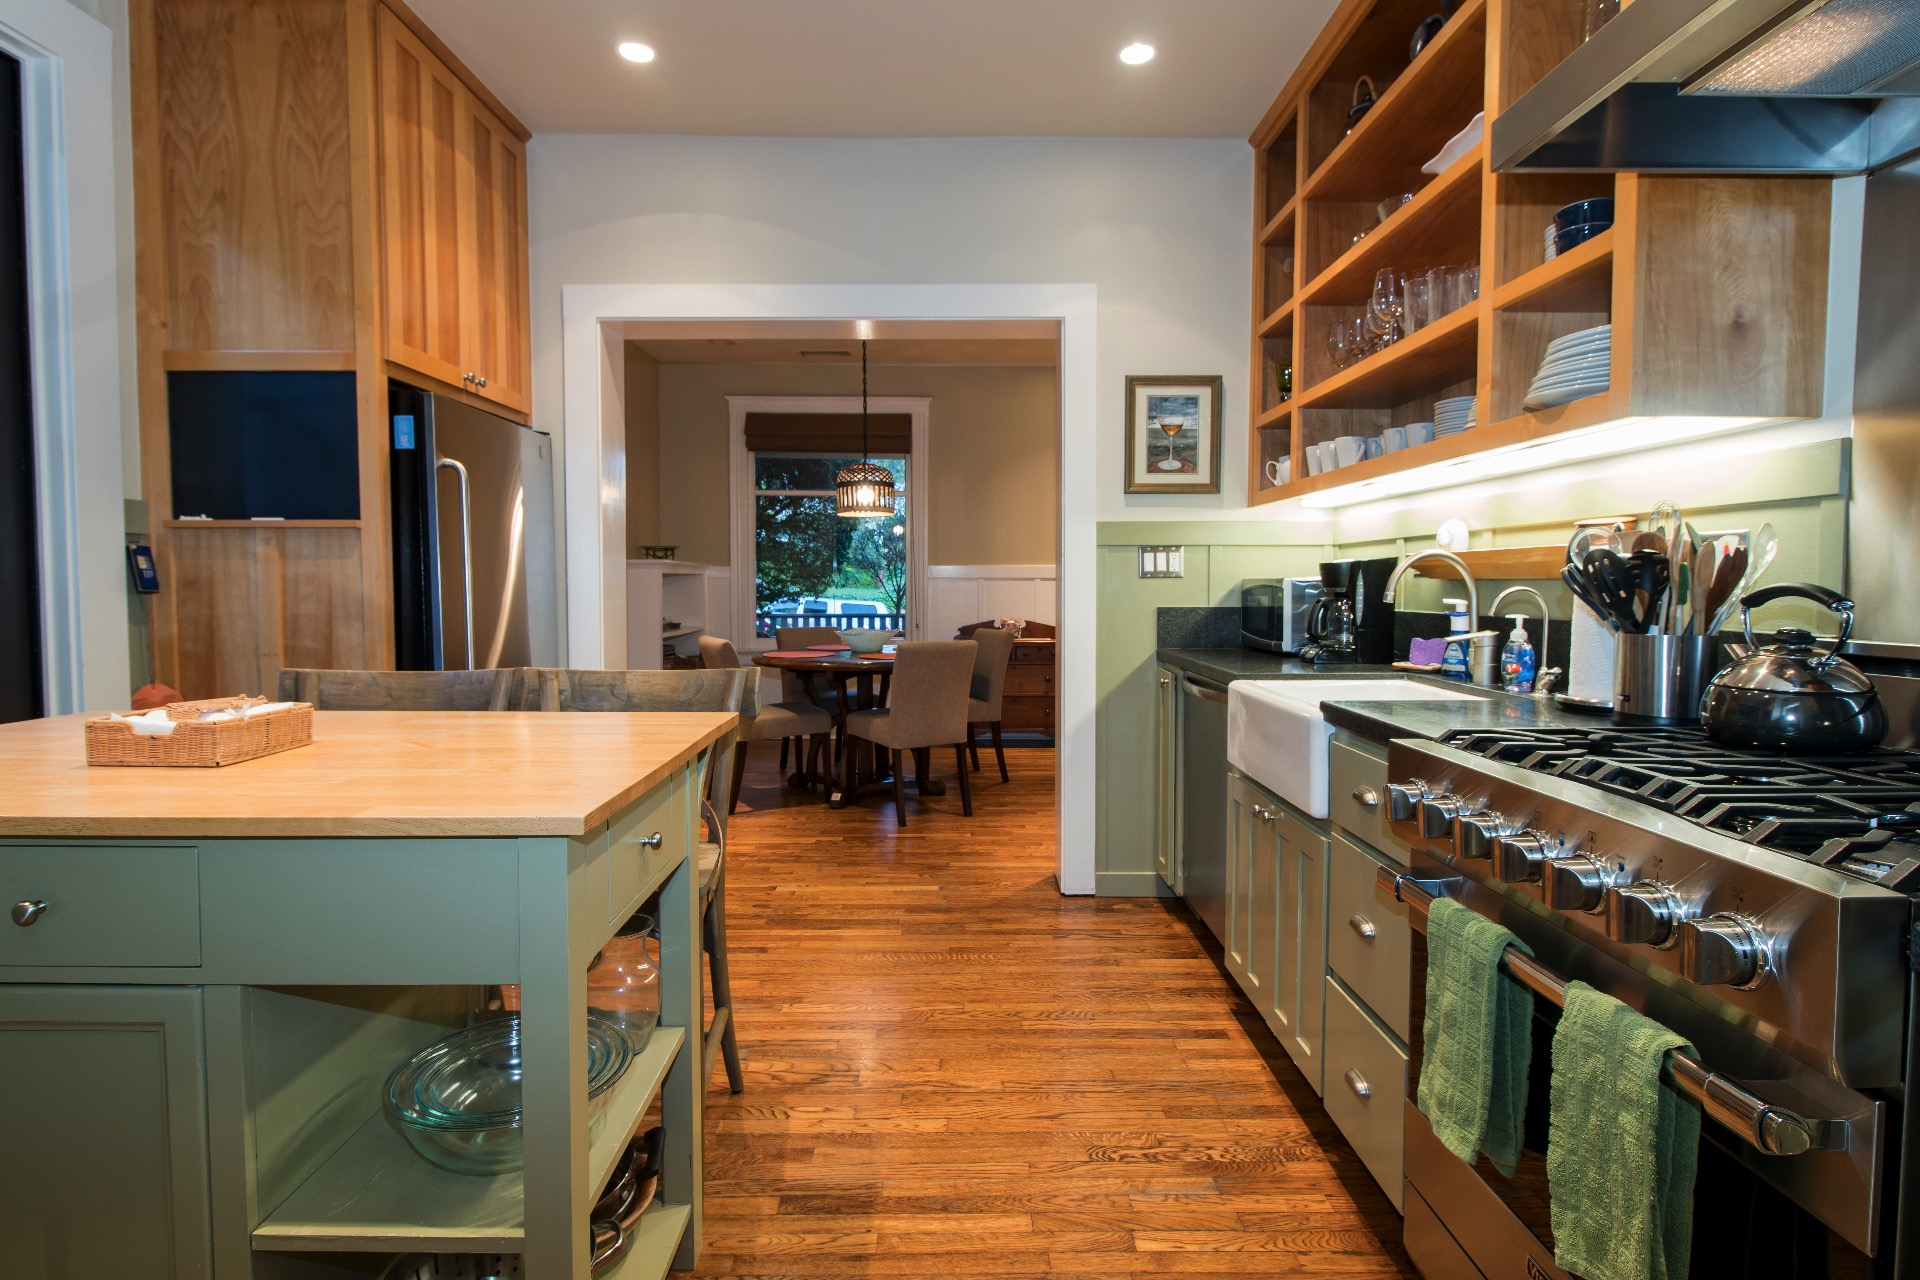 Another view of the upgraded kitchen